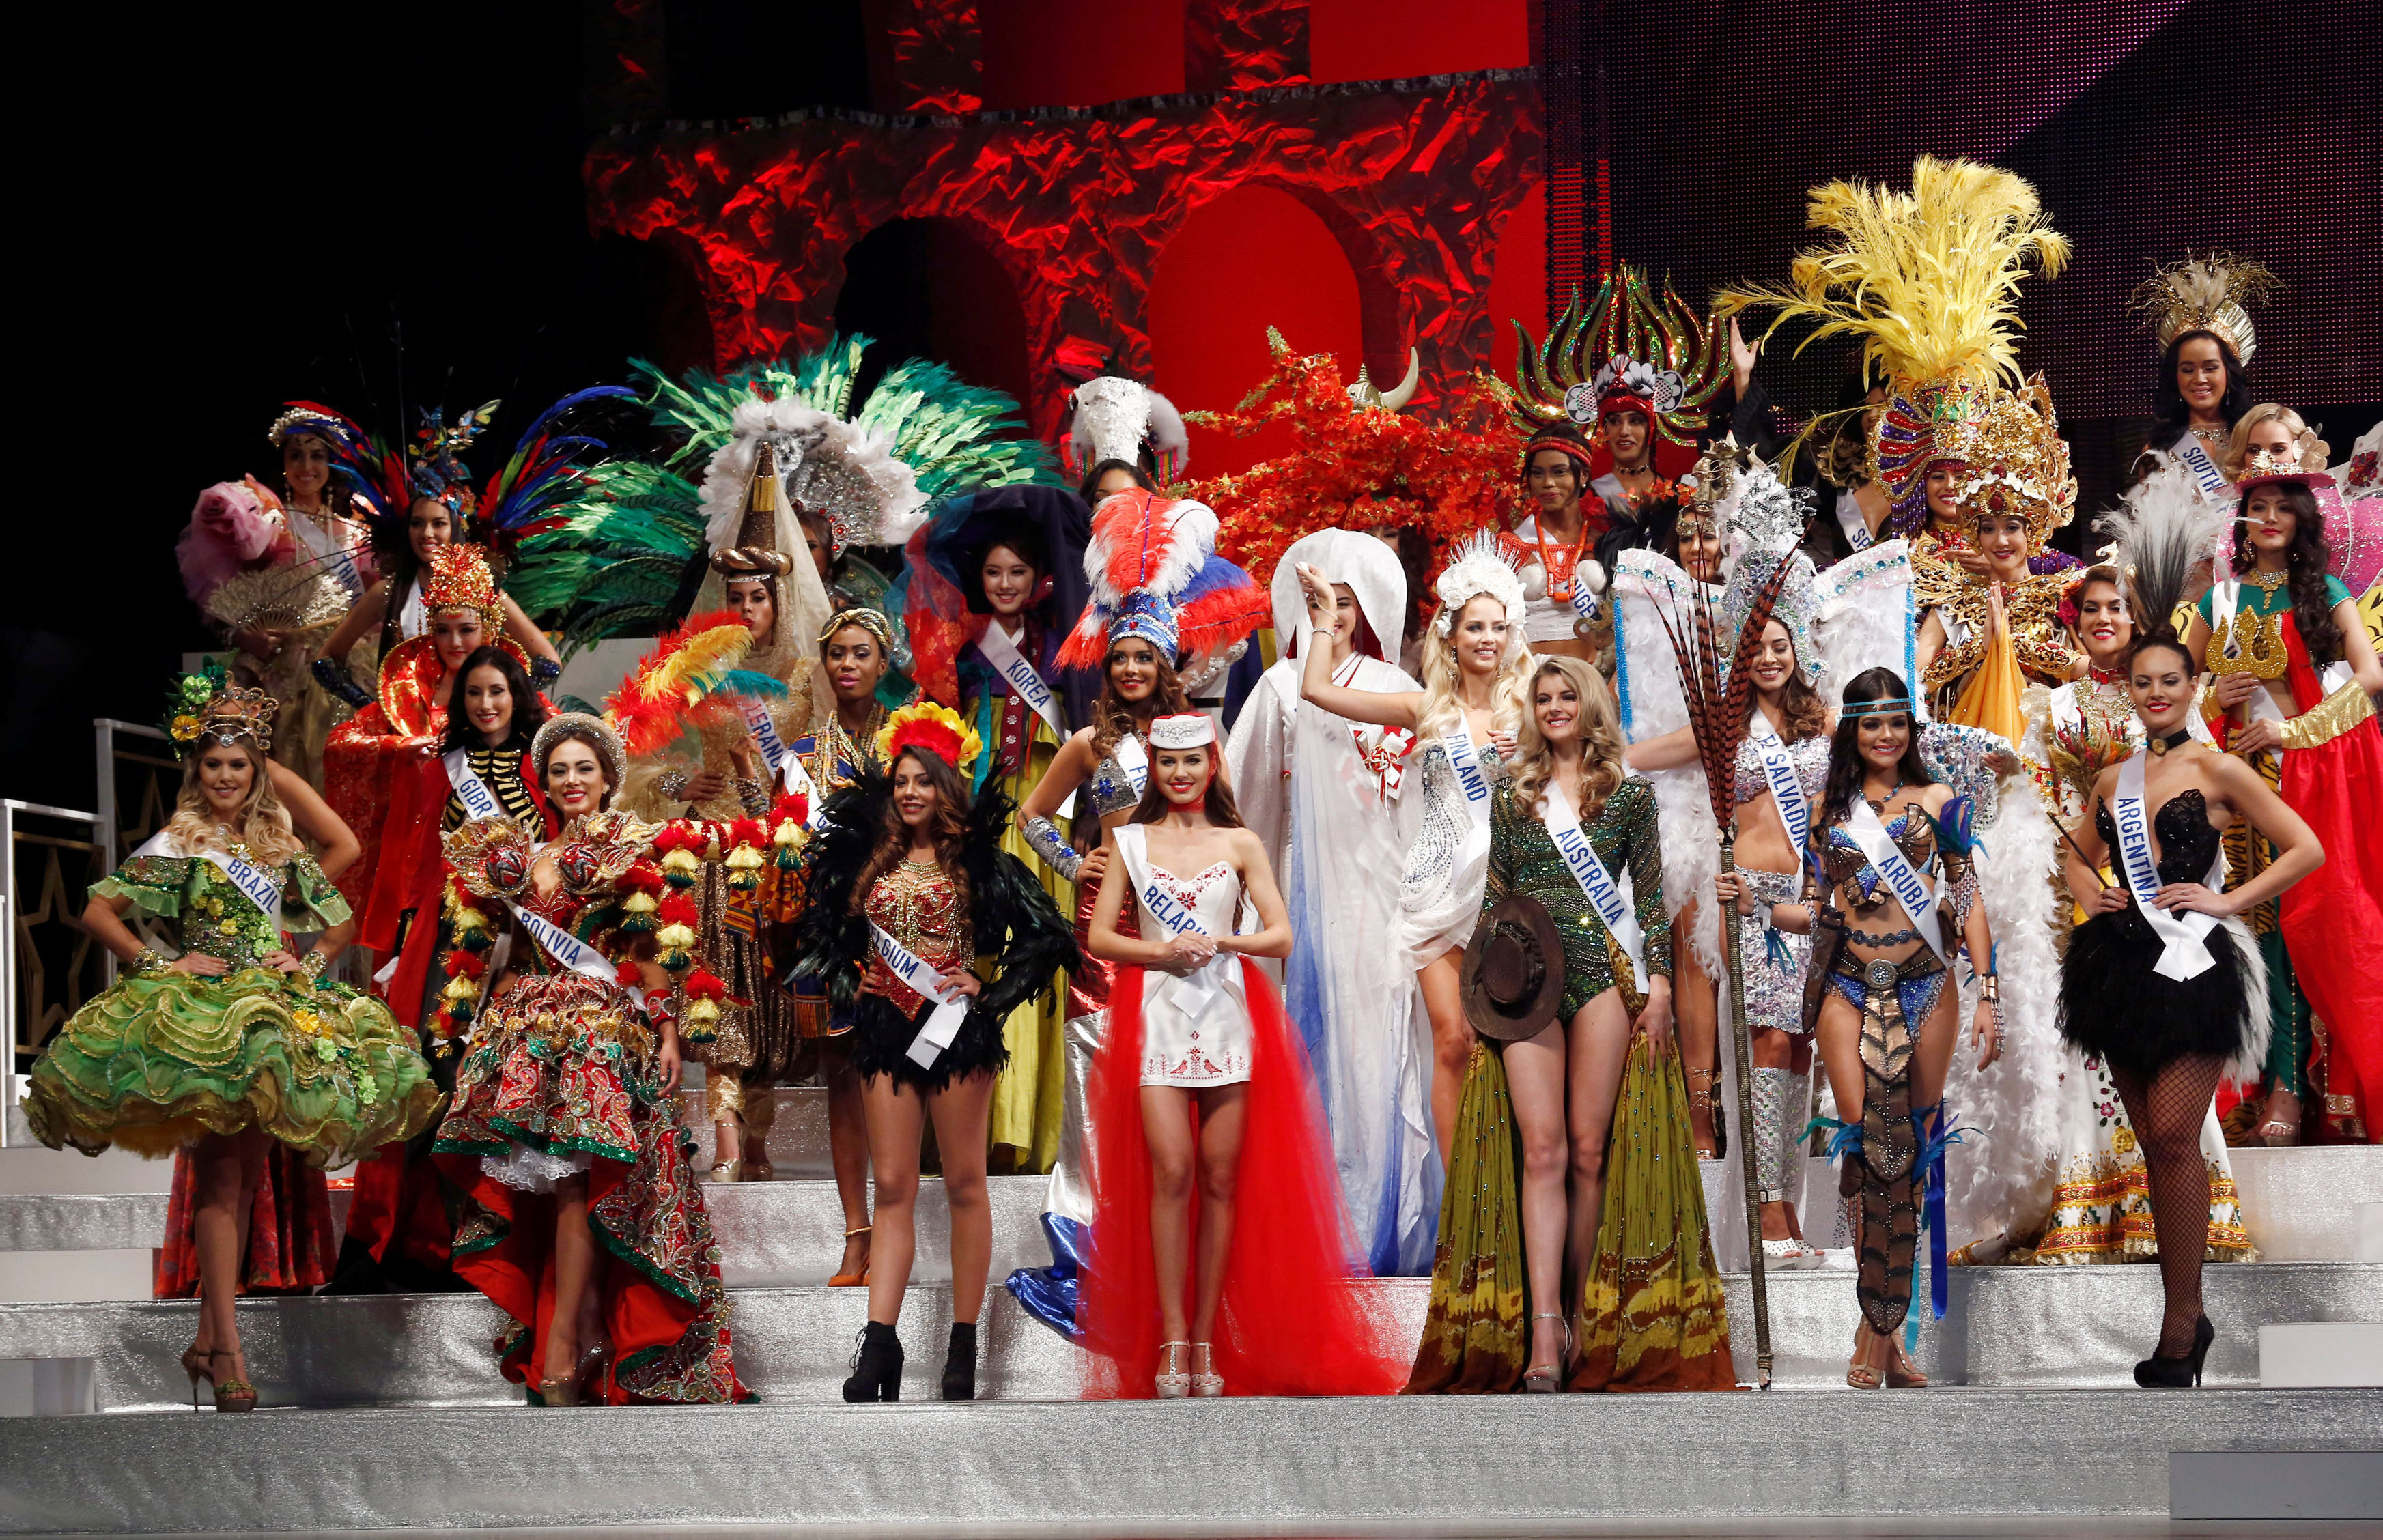 Contestants wearing national costumes pose in the opening of the 56th Miss International Beauty Pageant in Tokyo, Japan October 27, 2016.